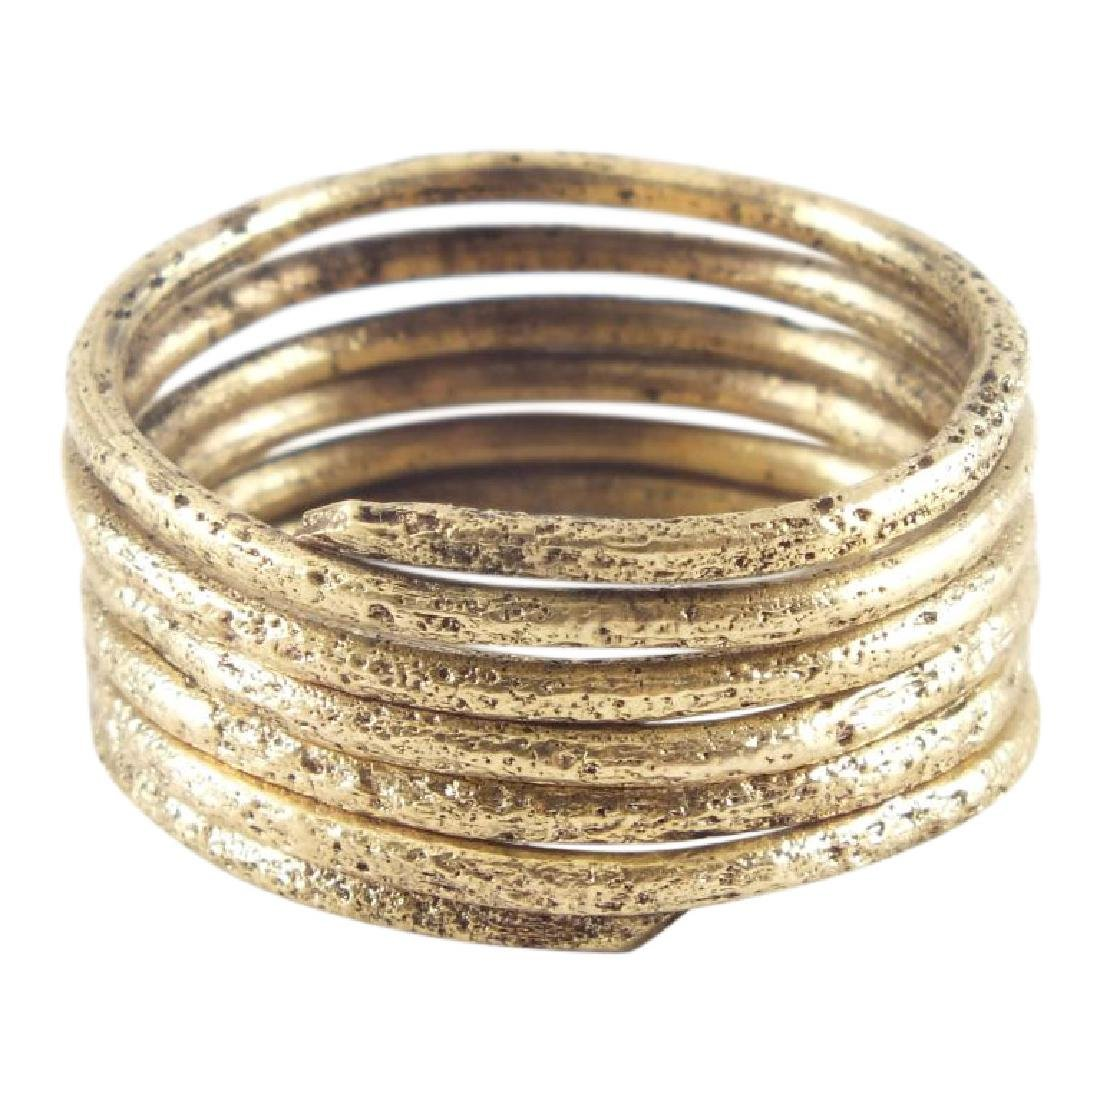 Viking Warrior's Coil Ring 10th Century AD